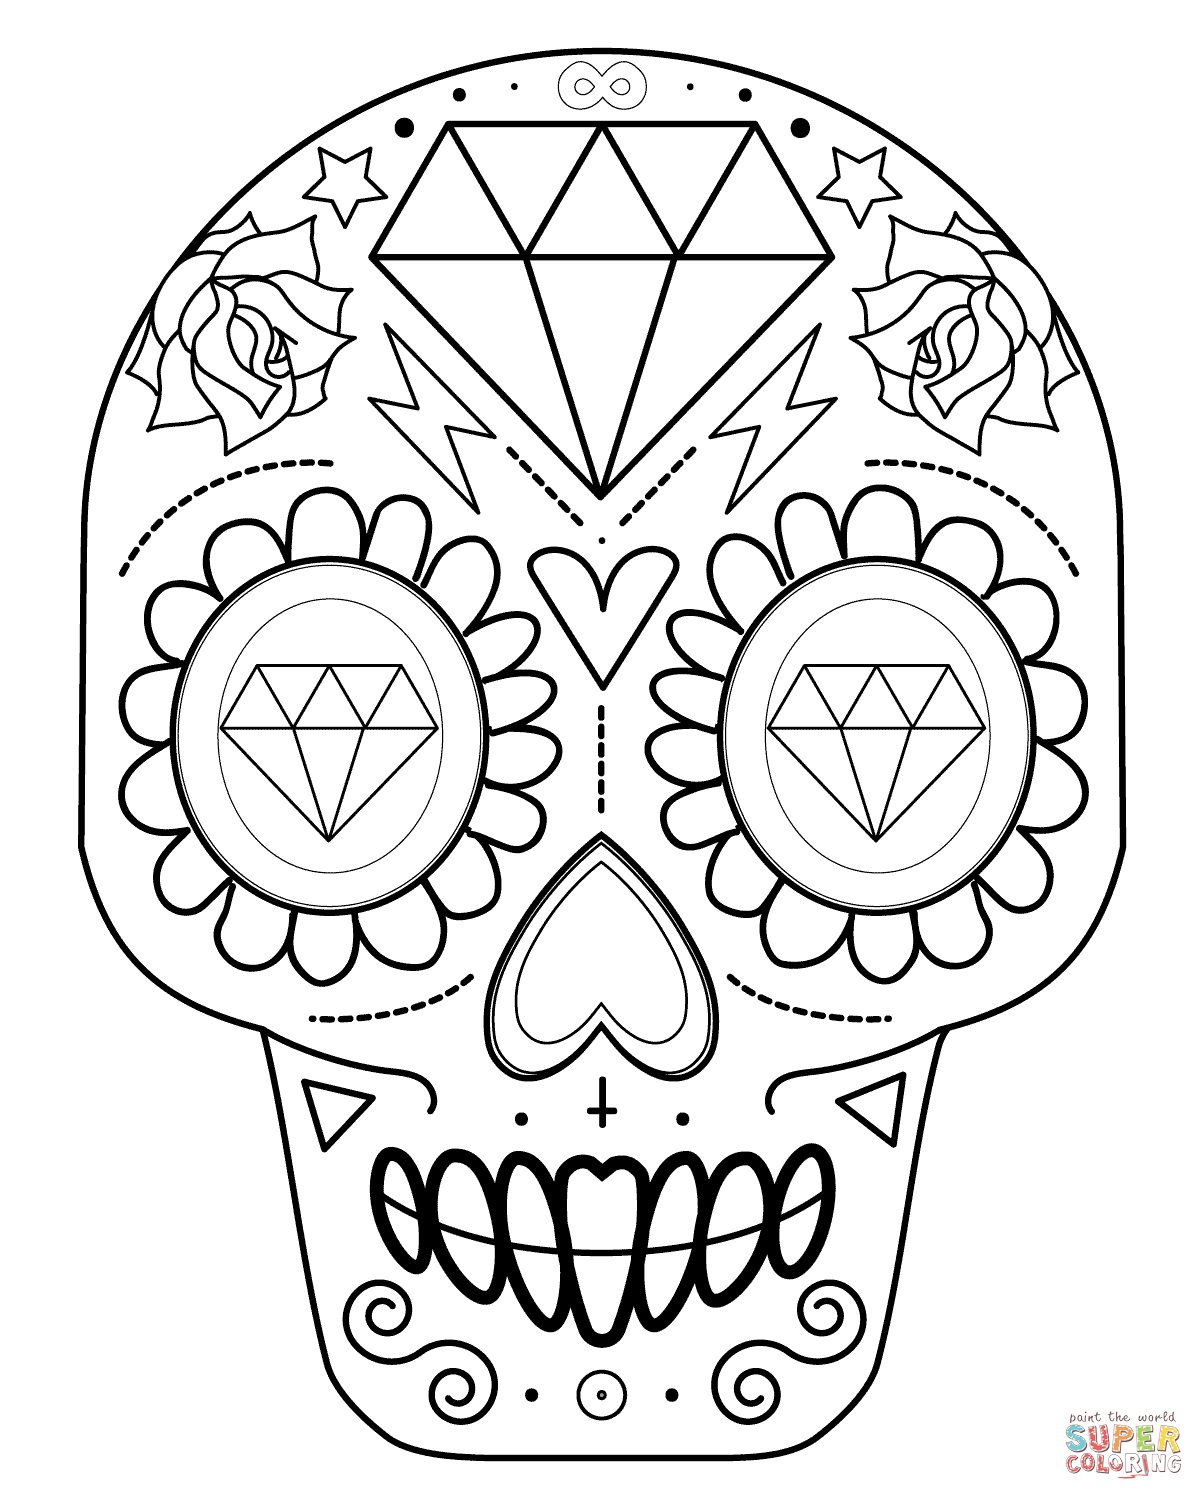 skull coloring book sugar skull tatoo hard adult difficult coloring pages skull coloring book